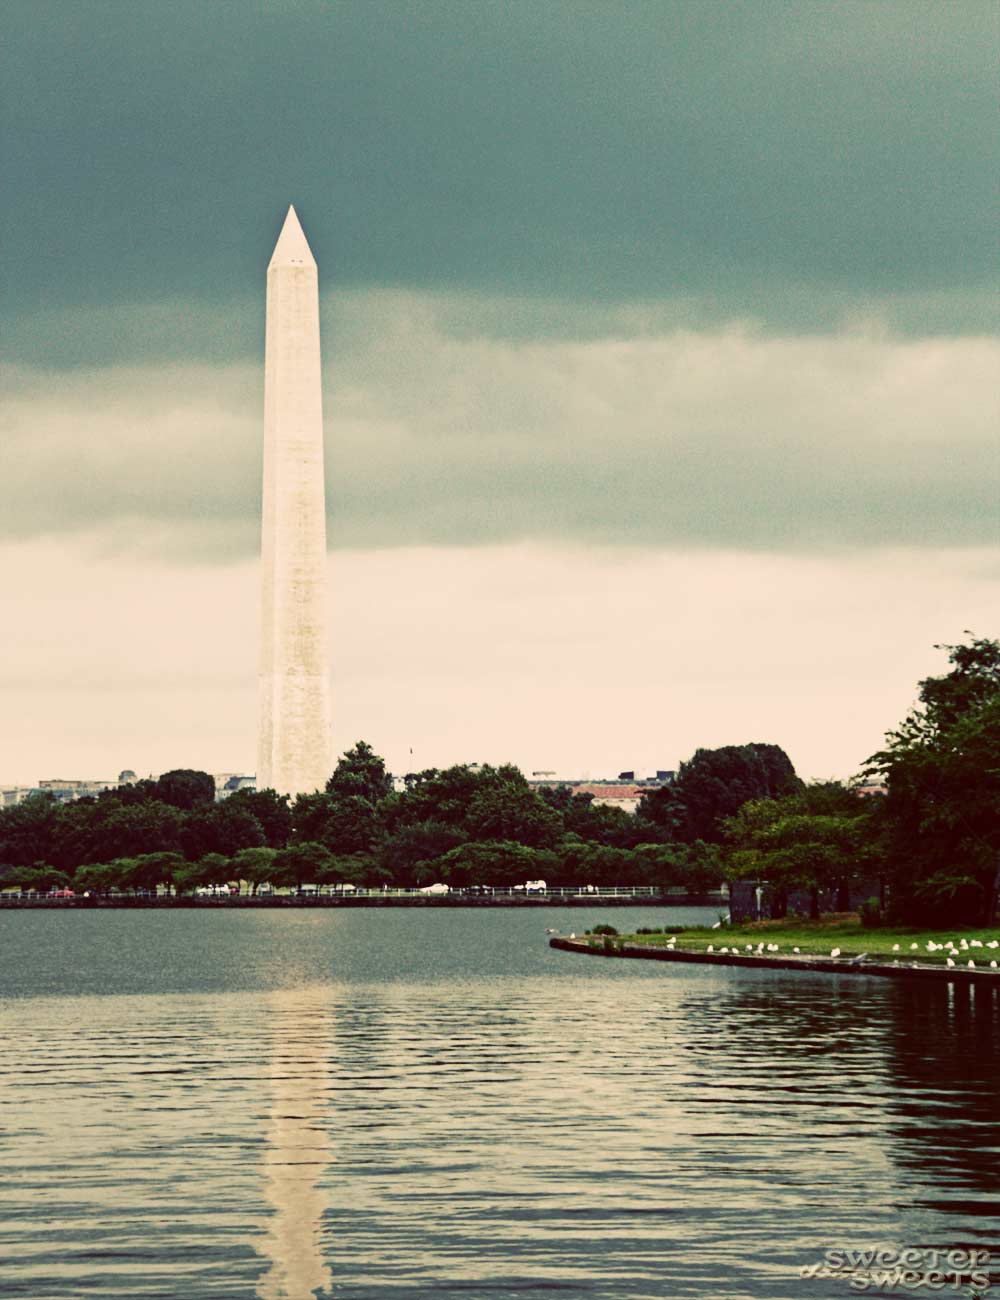 Washington, D.C. by Tricia @ SweeterThanSweets